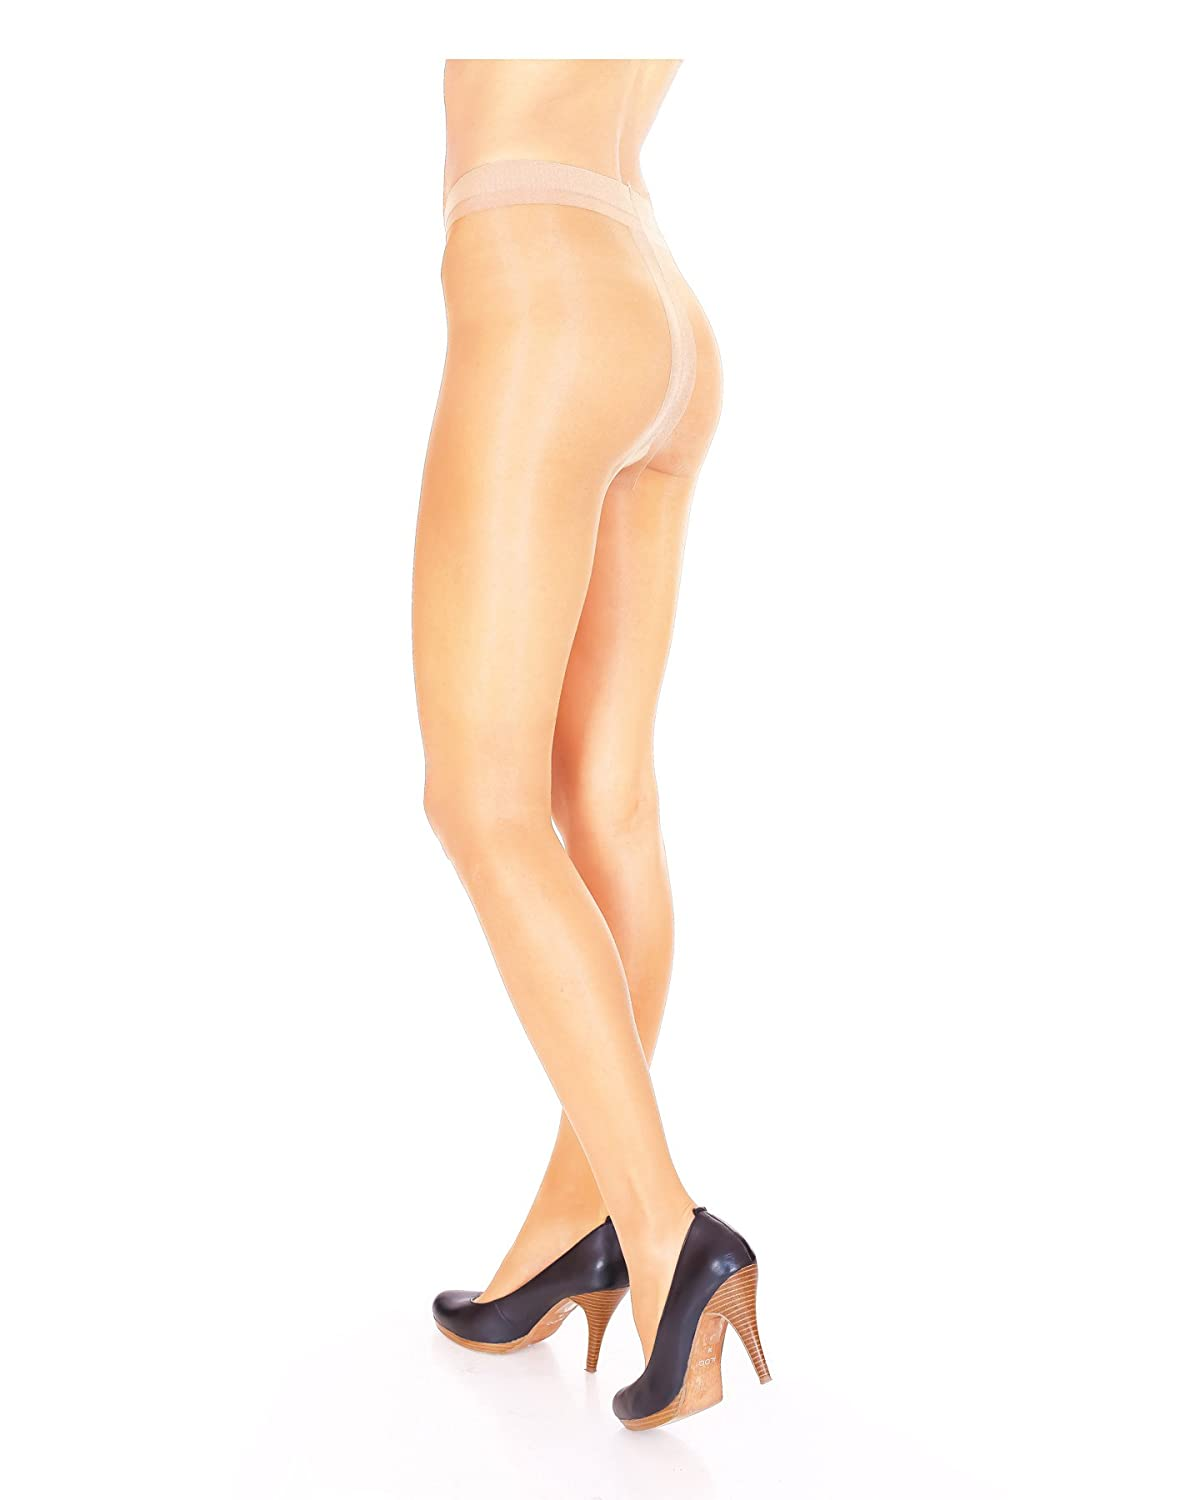 10 DENIER ULTRA SHEER TIGHTS WITH SPANDEX  NATURALS COLLECTION BY SILKY SALE